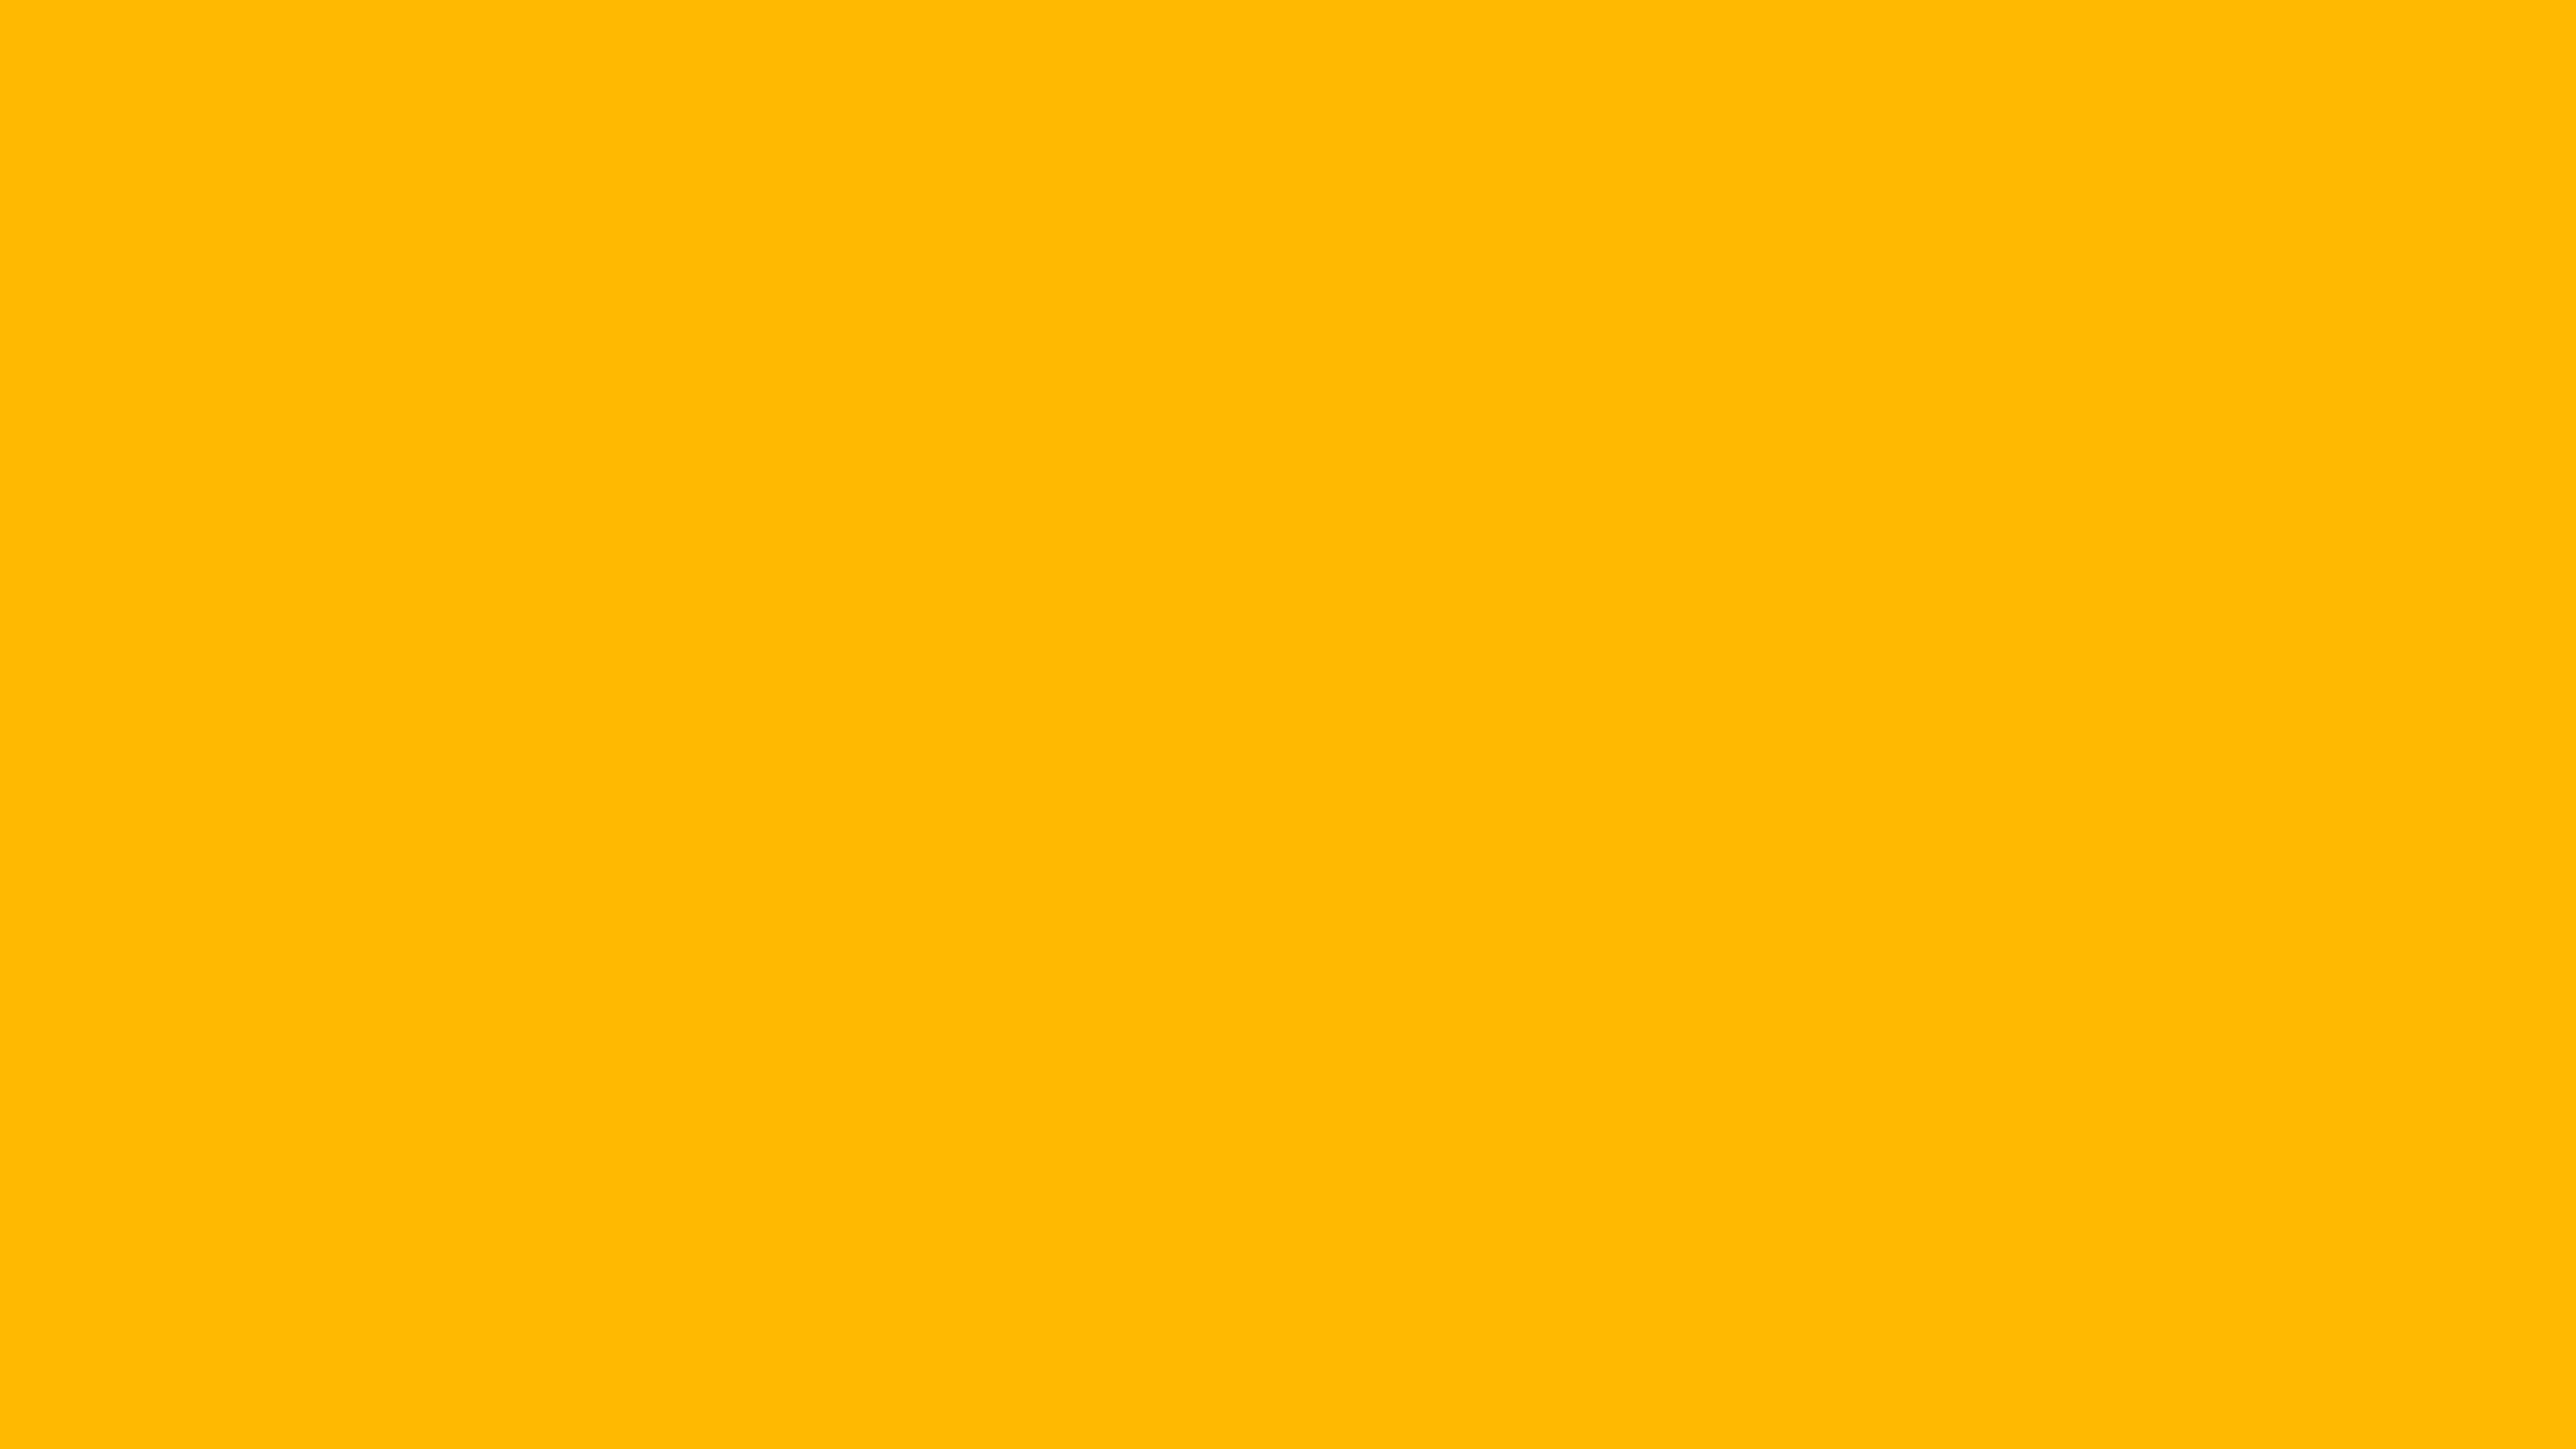 3840x2160 Selective Yellow Solid Color Background